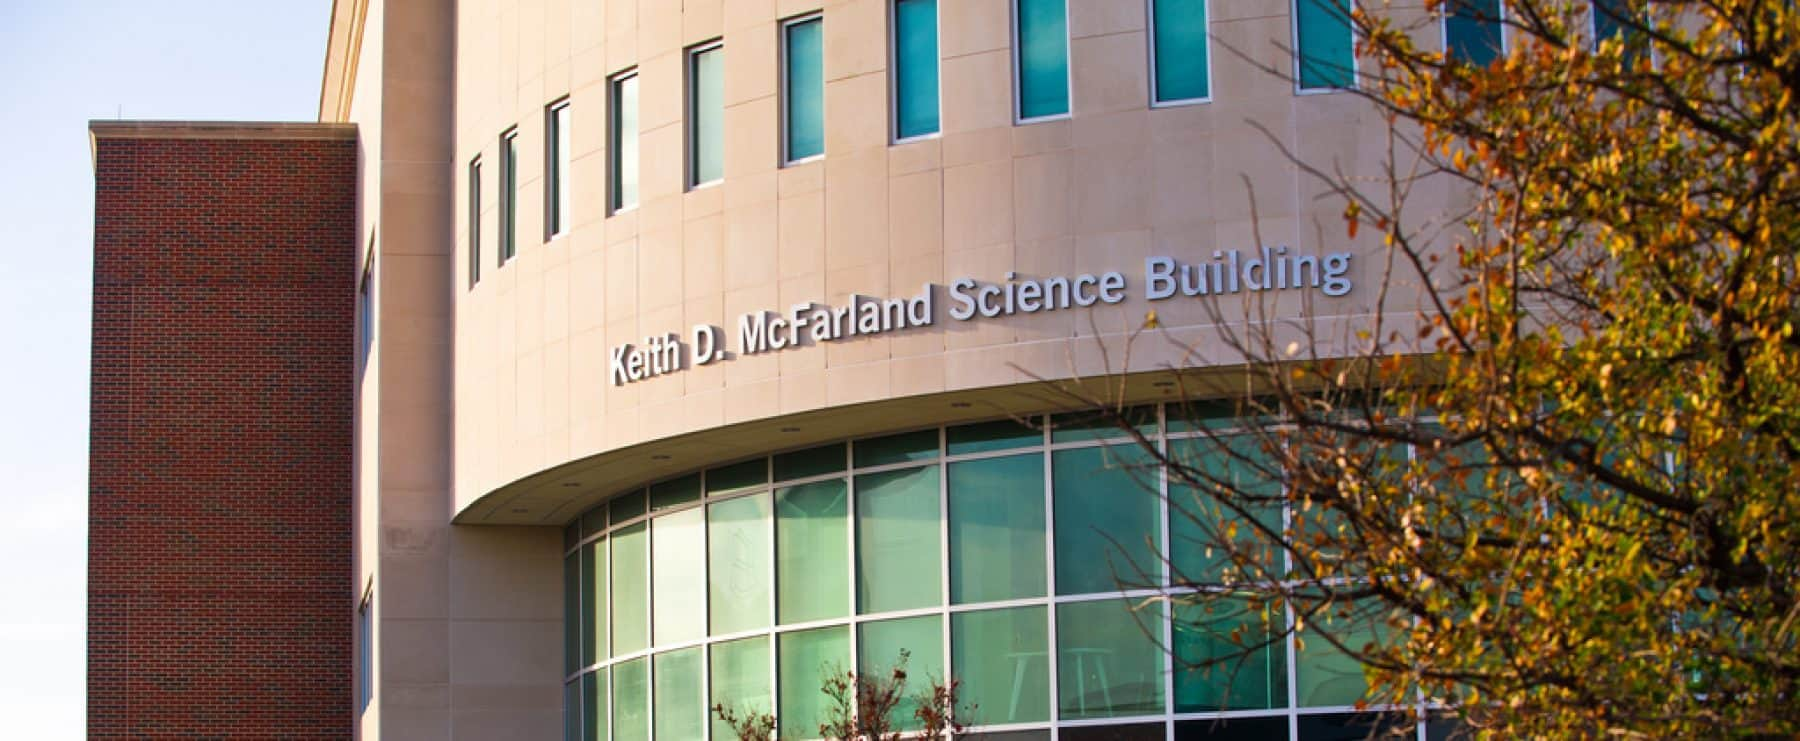 McFarland Science Building